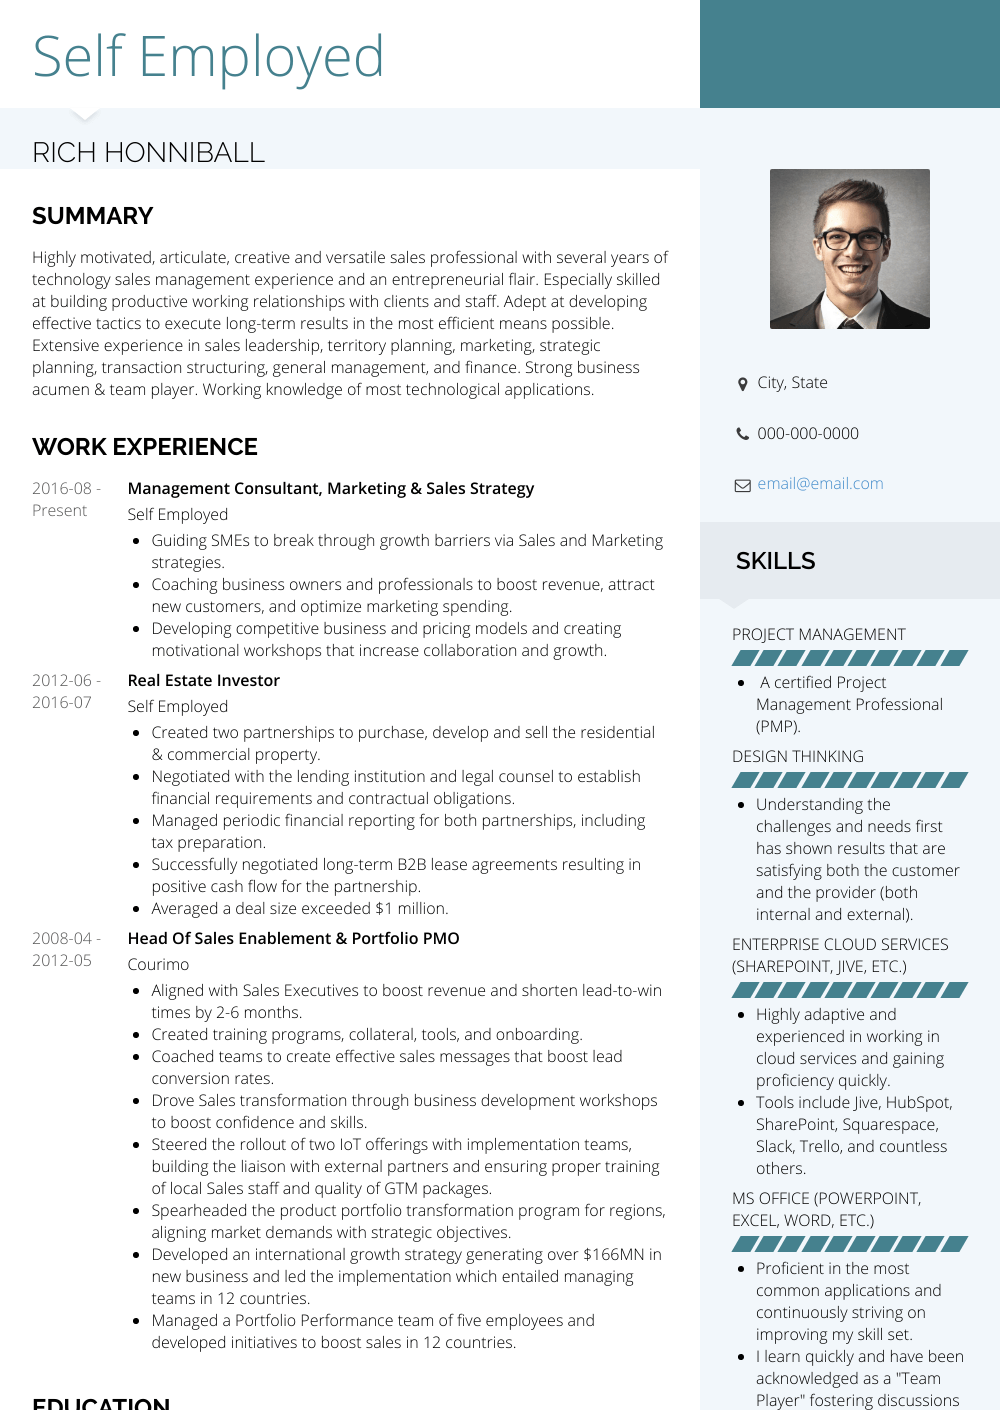 Self Employed Resume Sample and Template